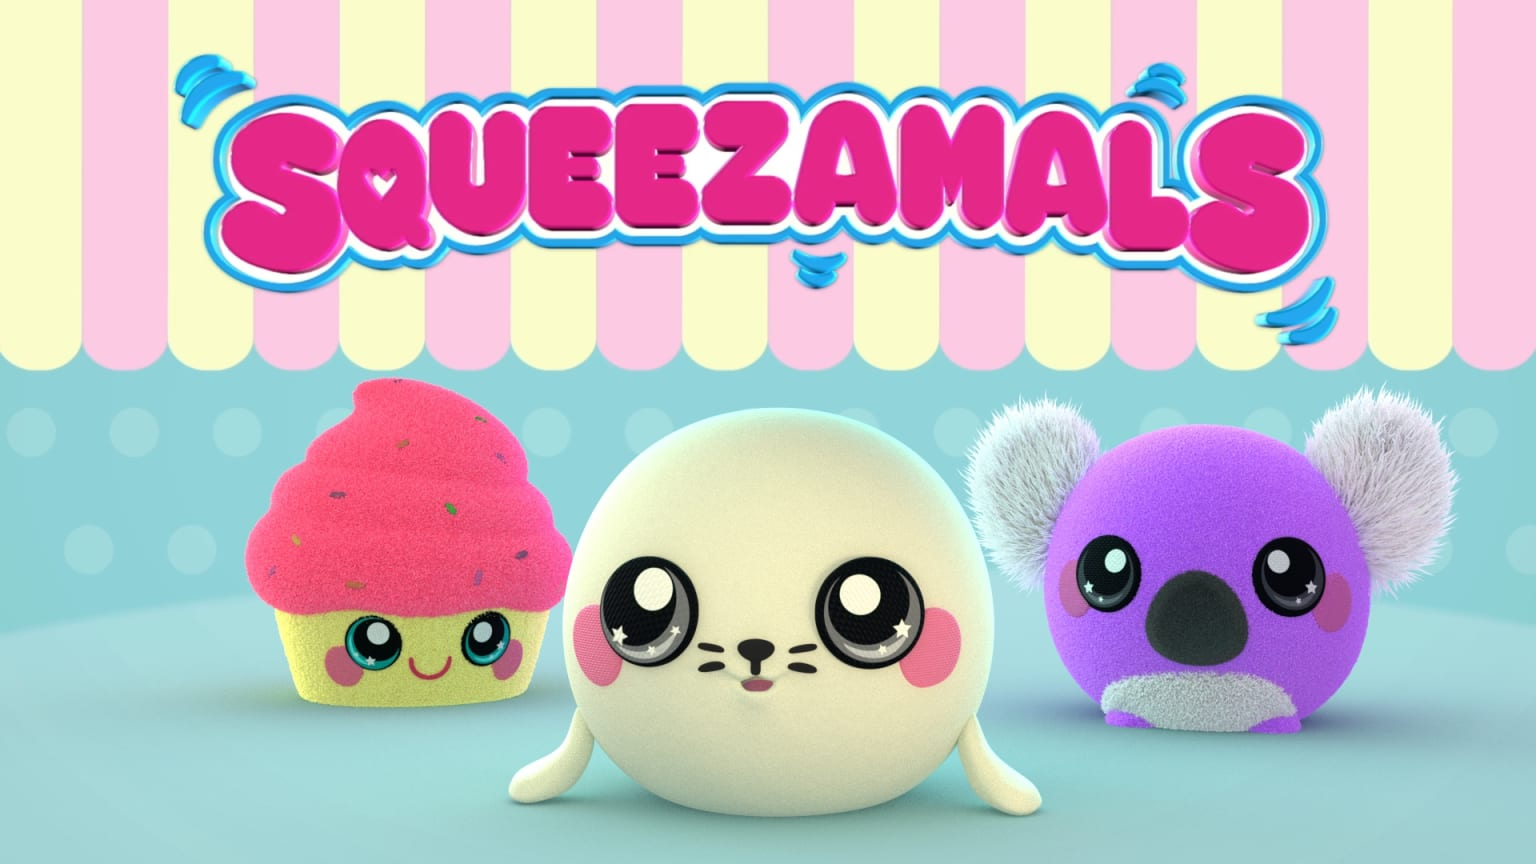 Squeezamals - Toy Commercial